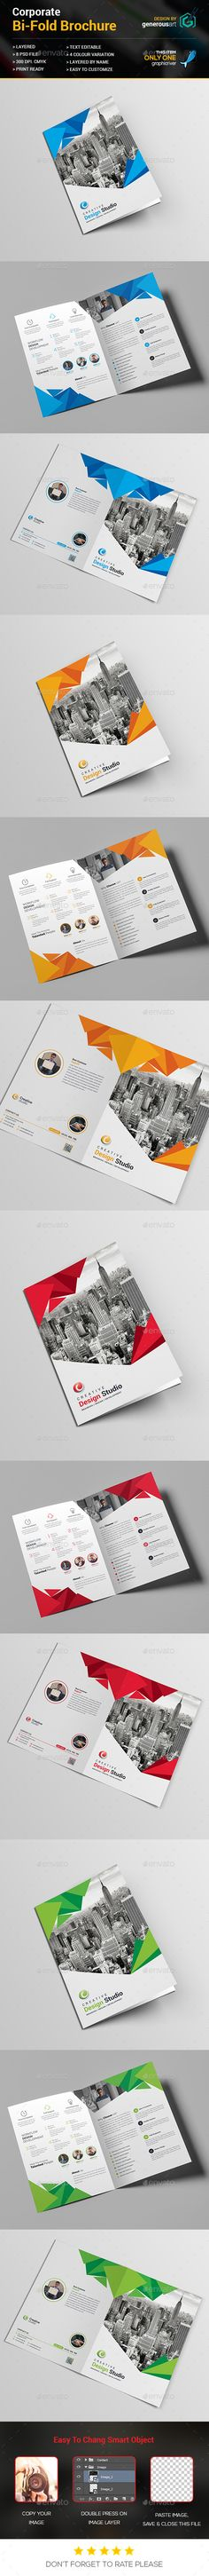 The 15 Best Top Pharmacy Brochure Design Templates Images On